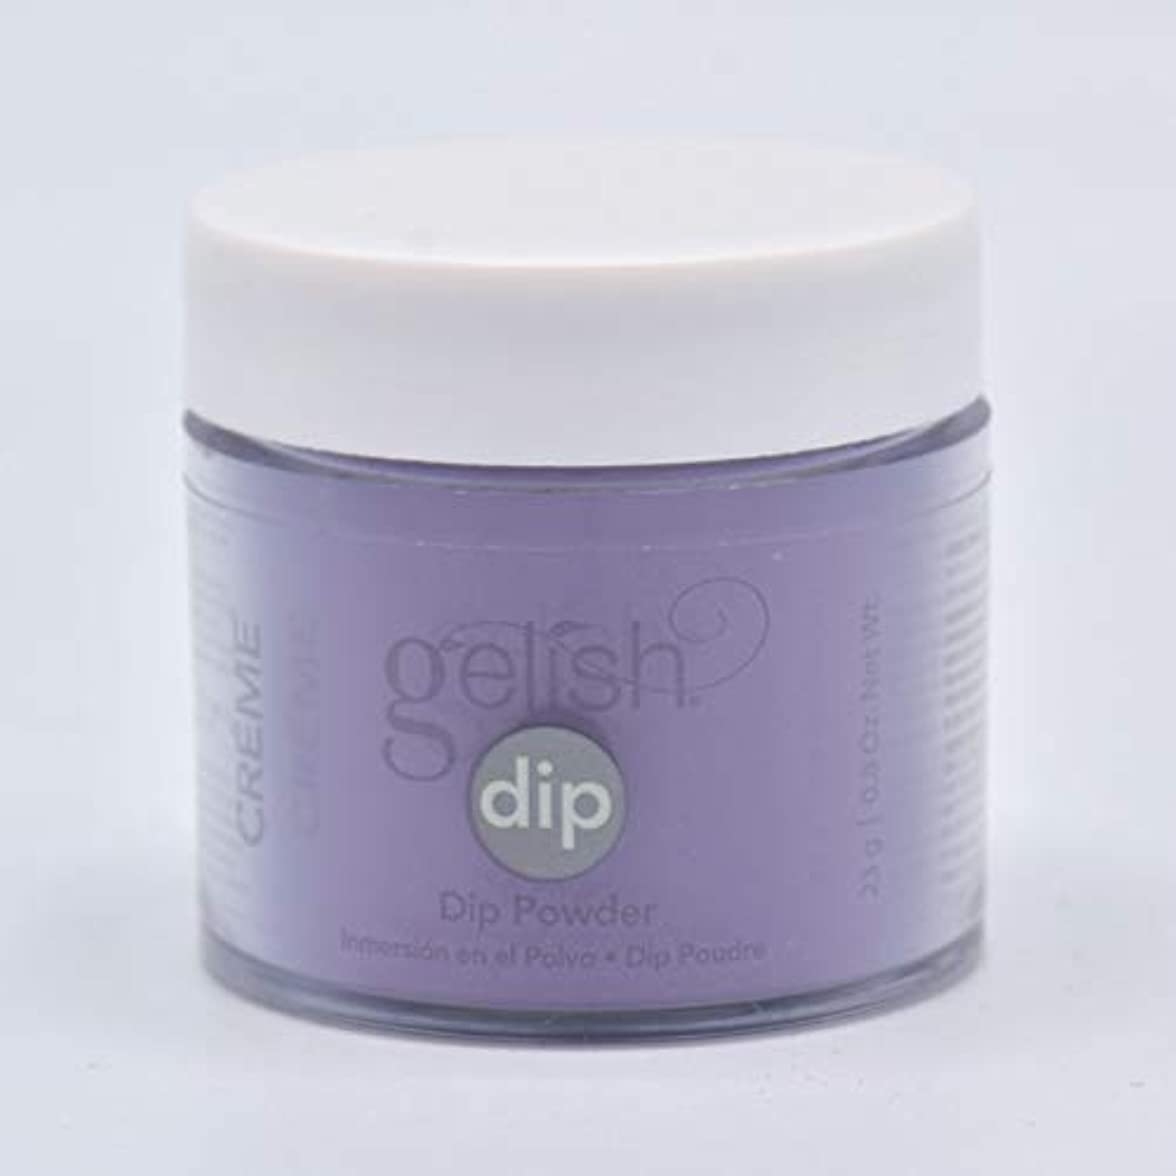 選挙リル同志Harmony Gelish - Acrylic Dip Powder - Black Cherry Berry - 23g / 0.8oz